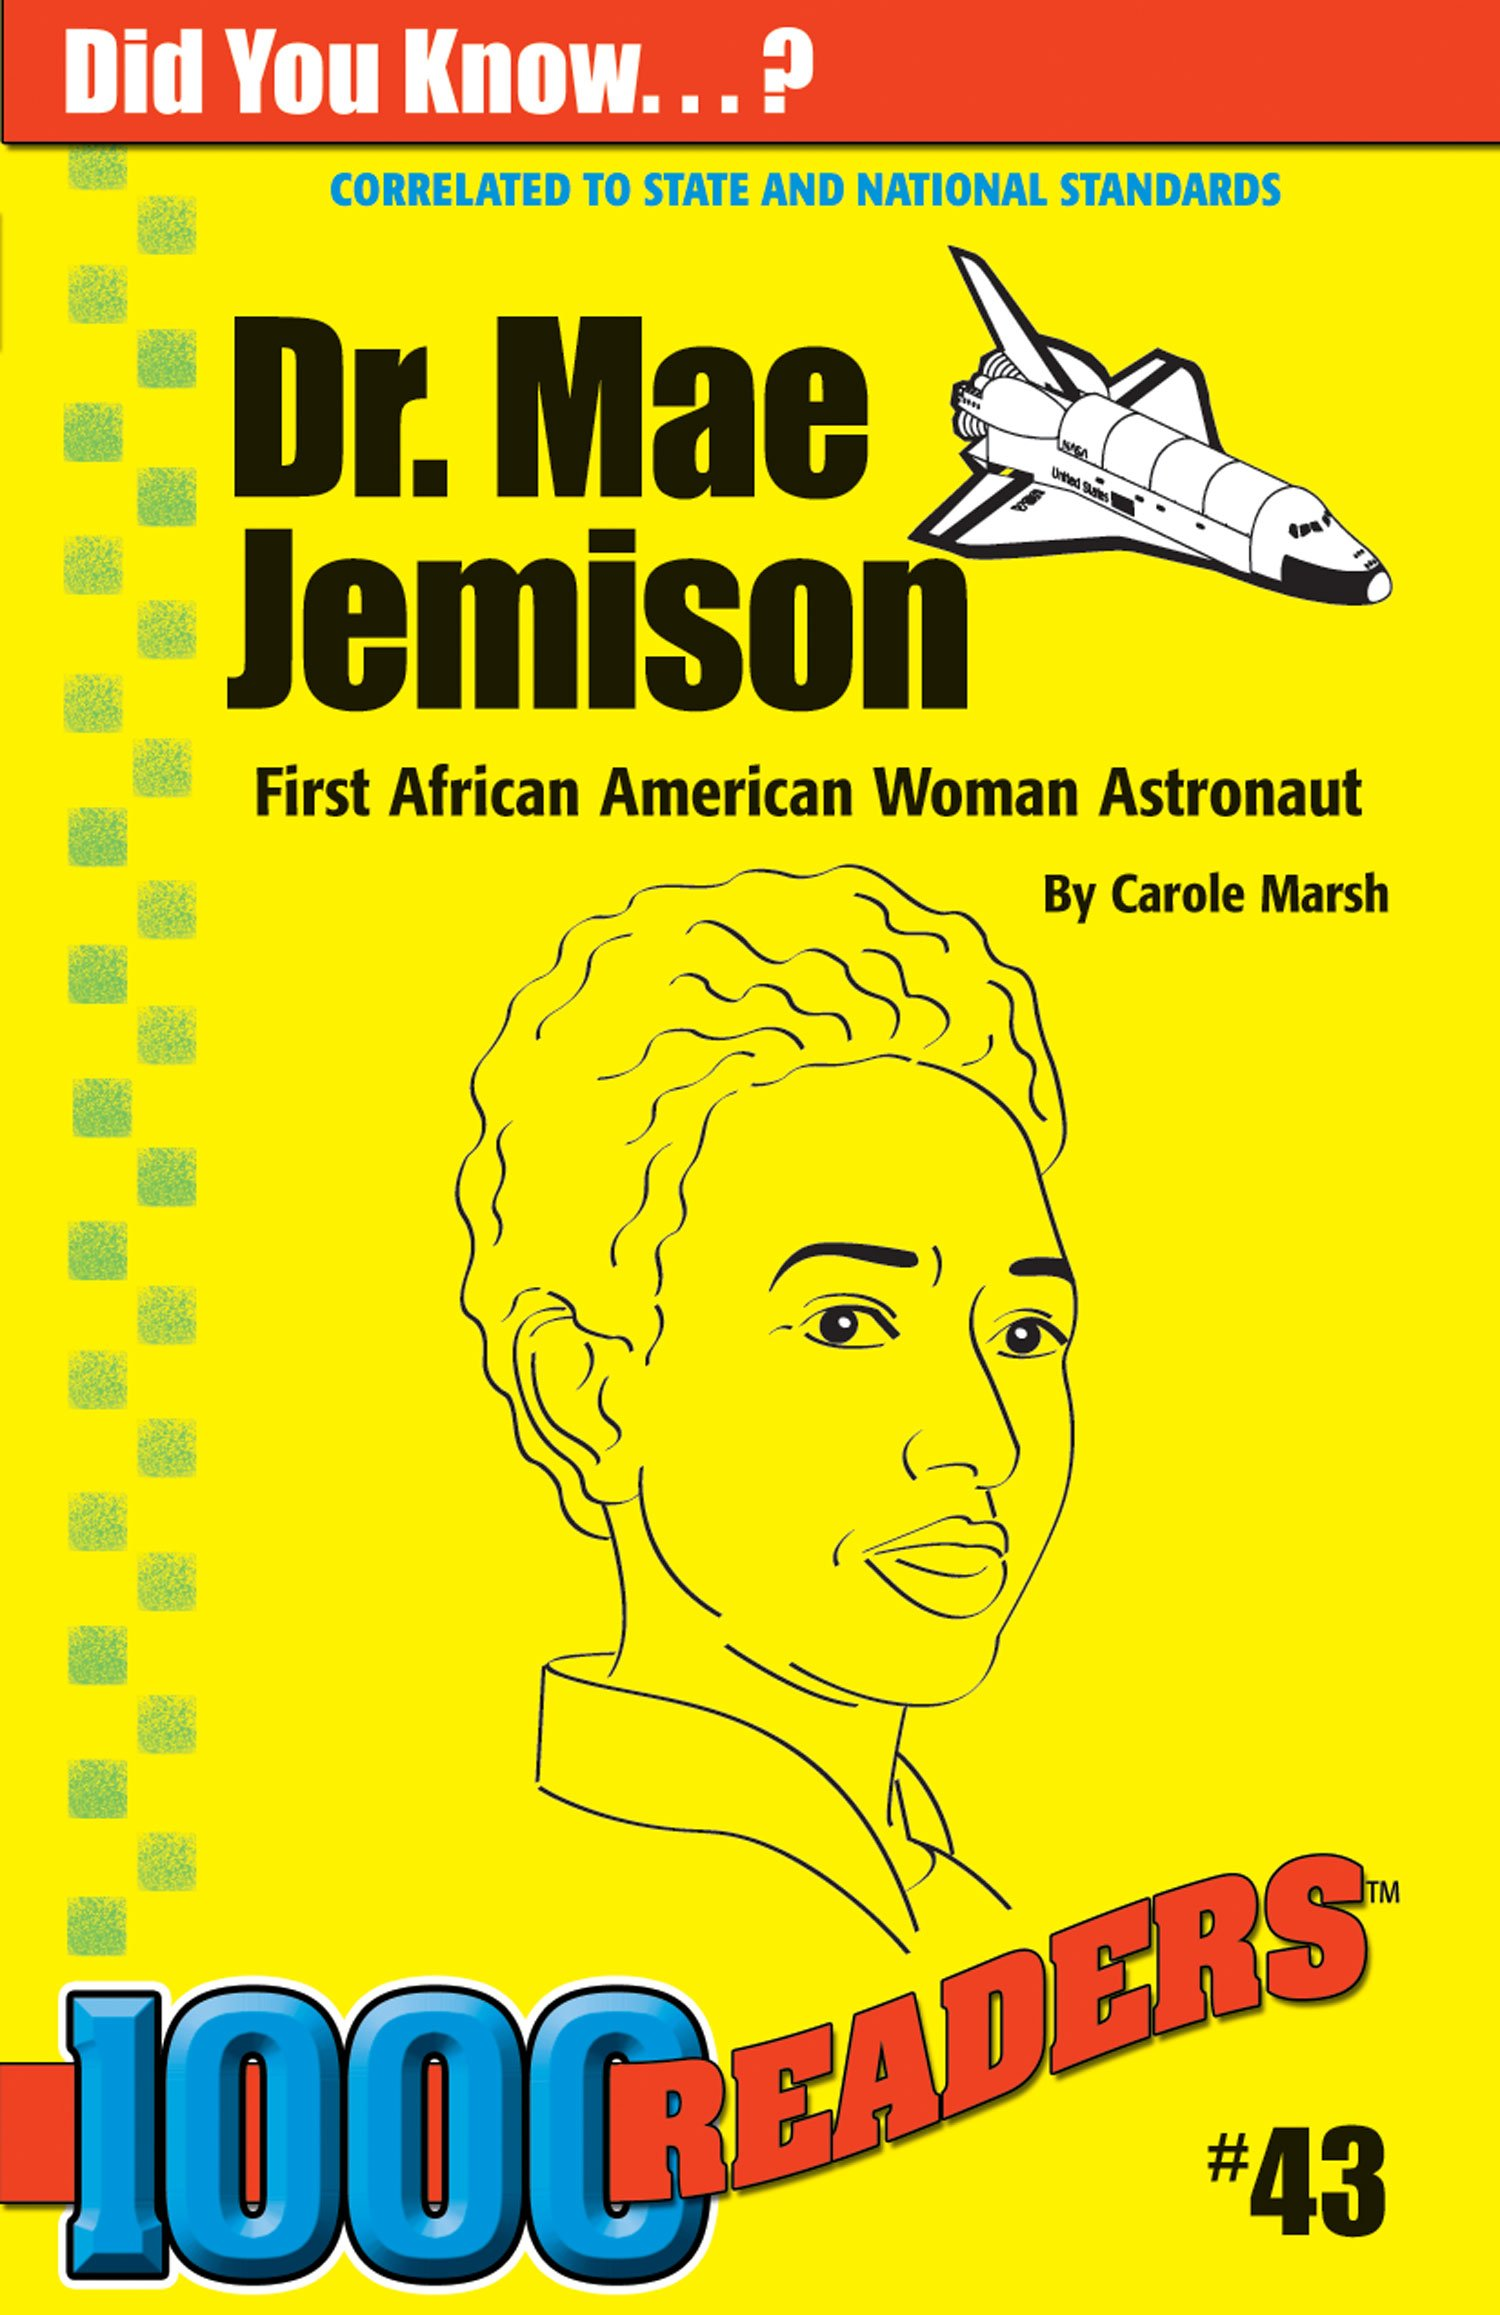 Dr. Mae Jemison: First African American Woman Astronaut (43) (1000 Readers) PDF